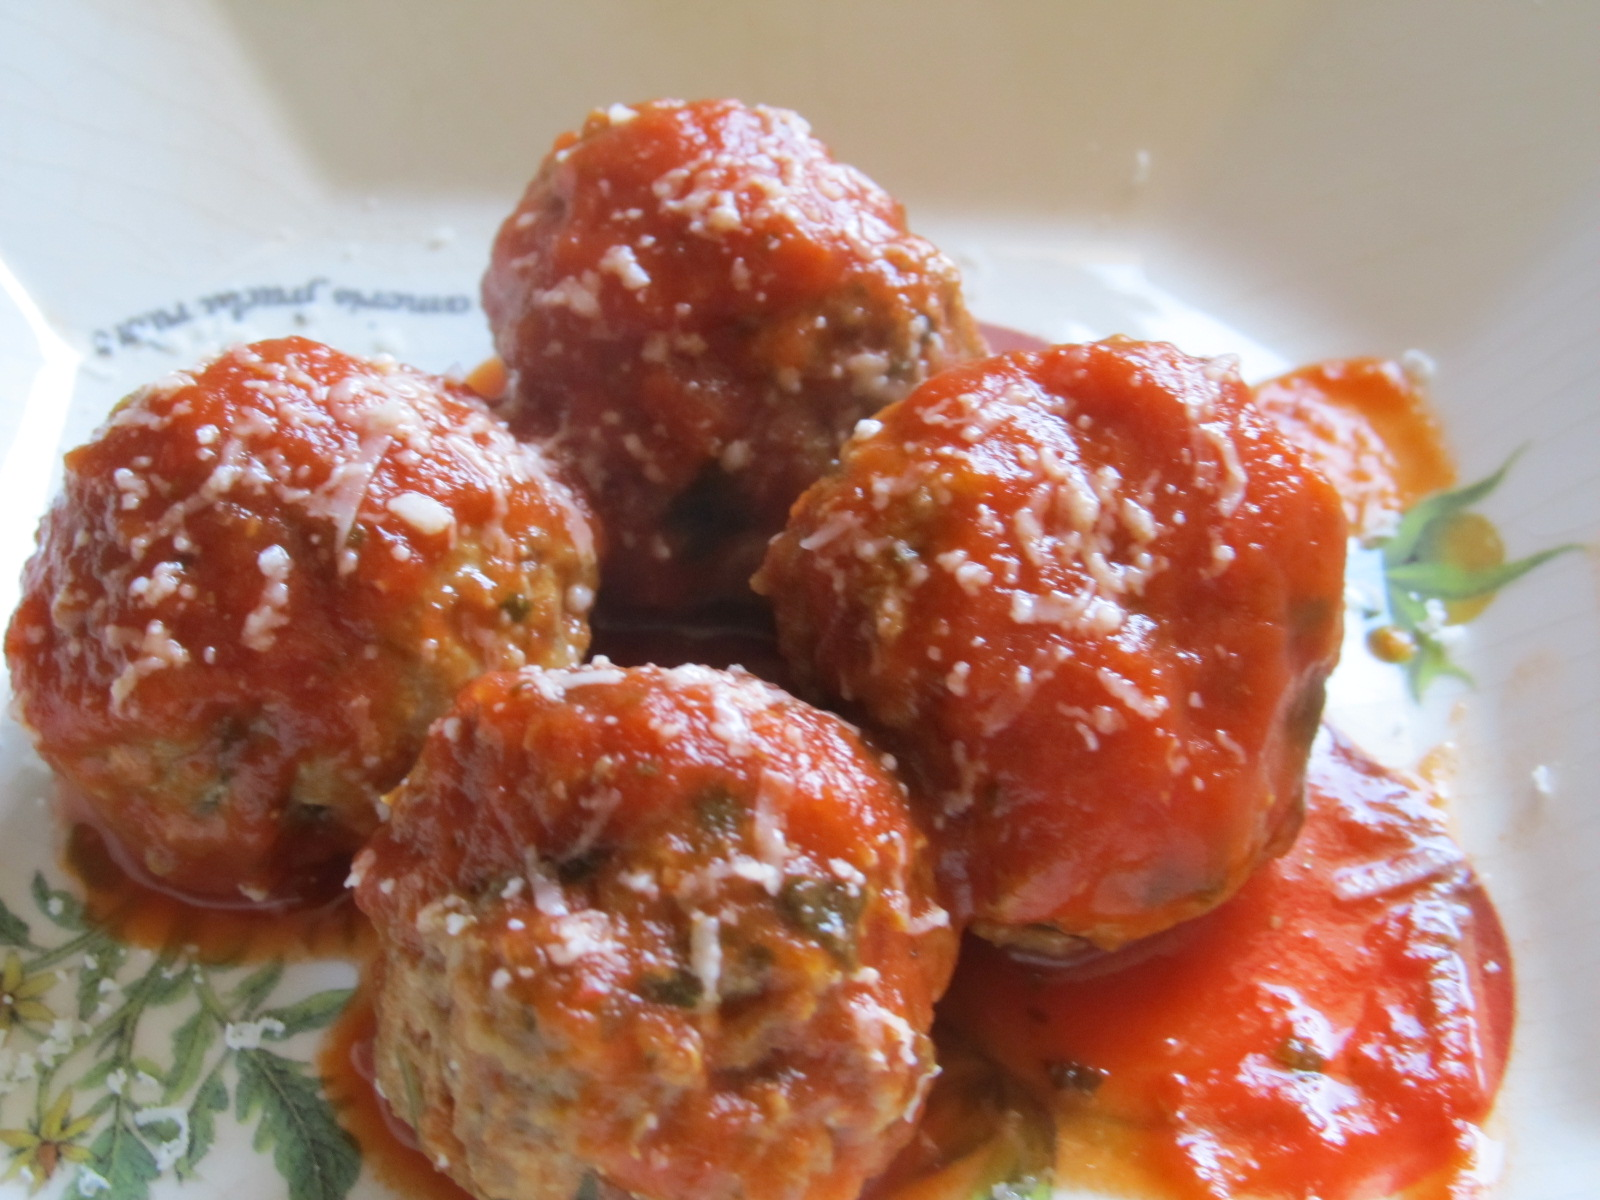 30 Minute (Delicious!) Italian Meatballs | M. Reed McCall, Author